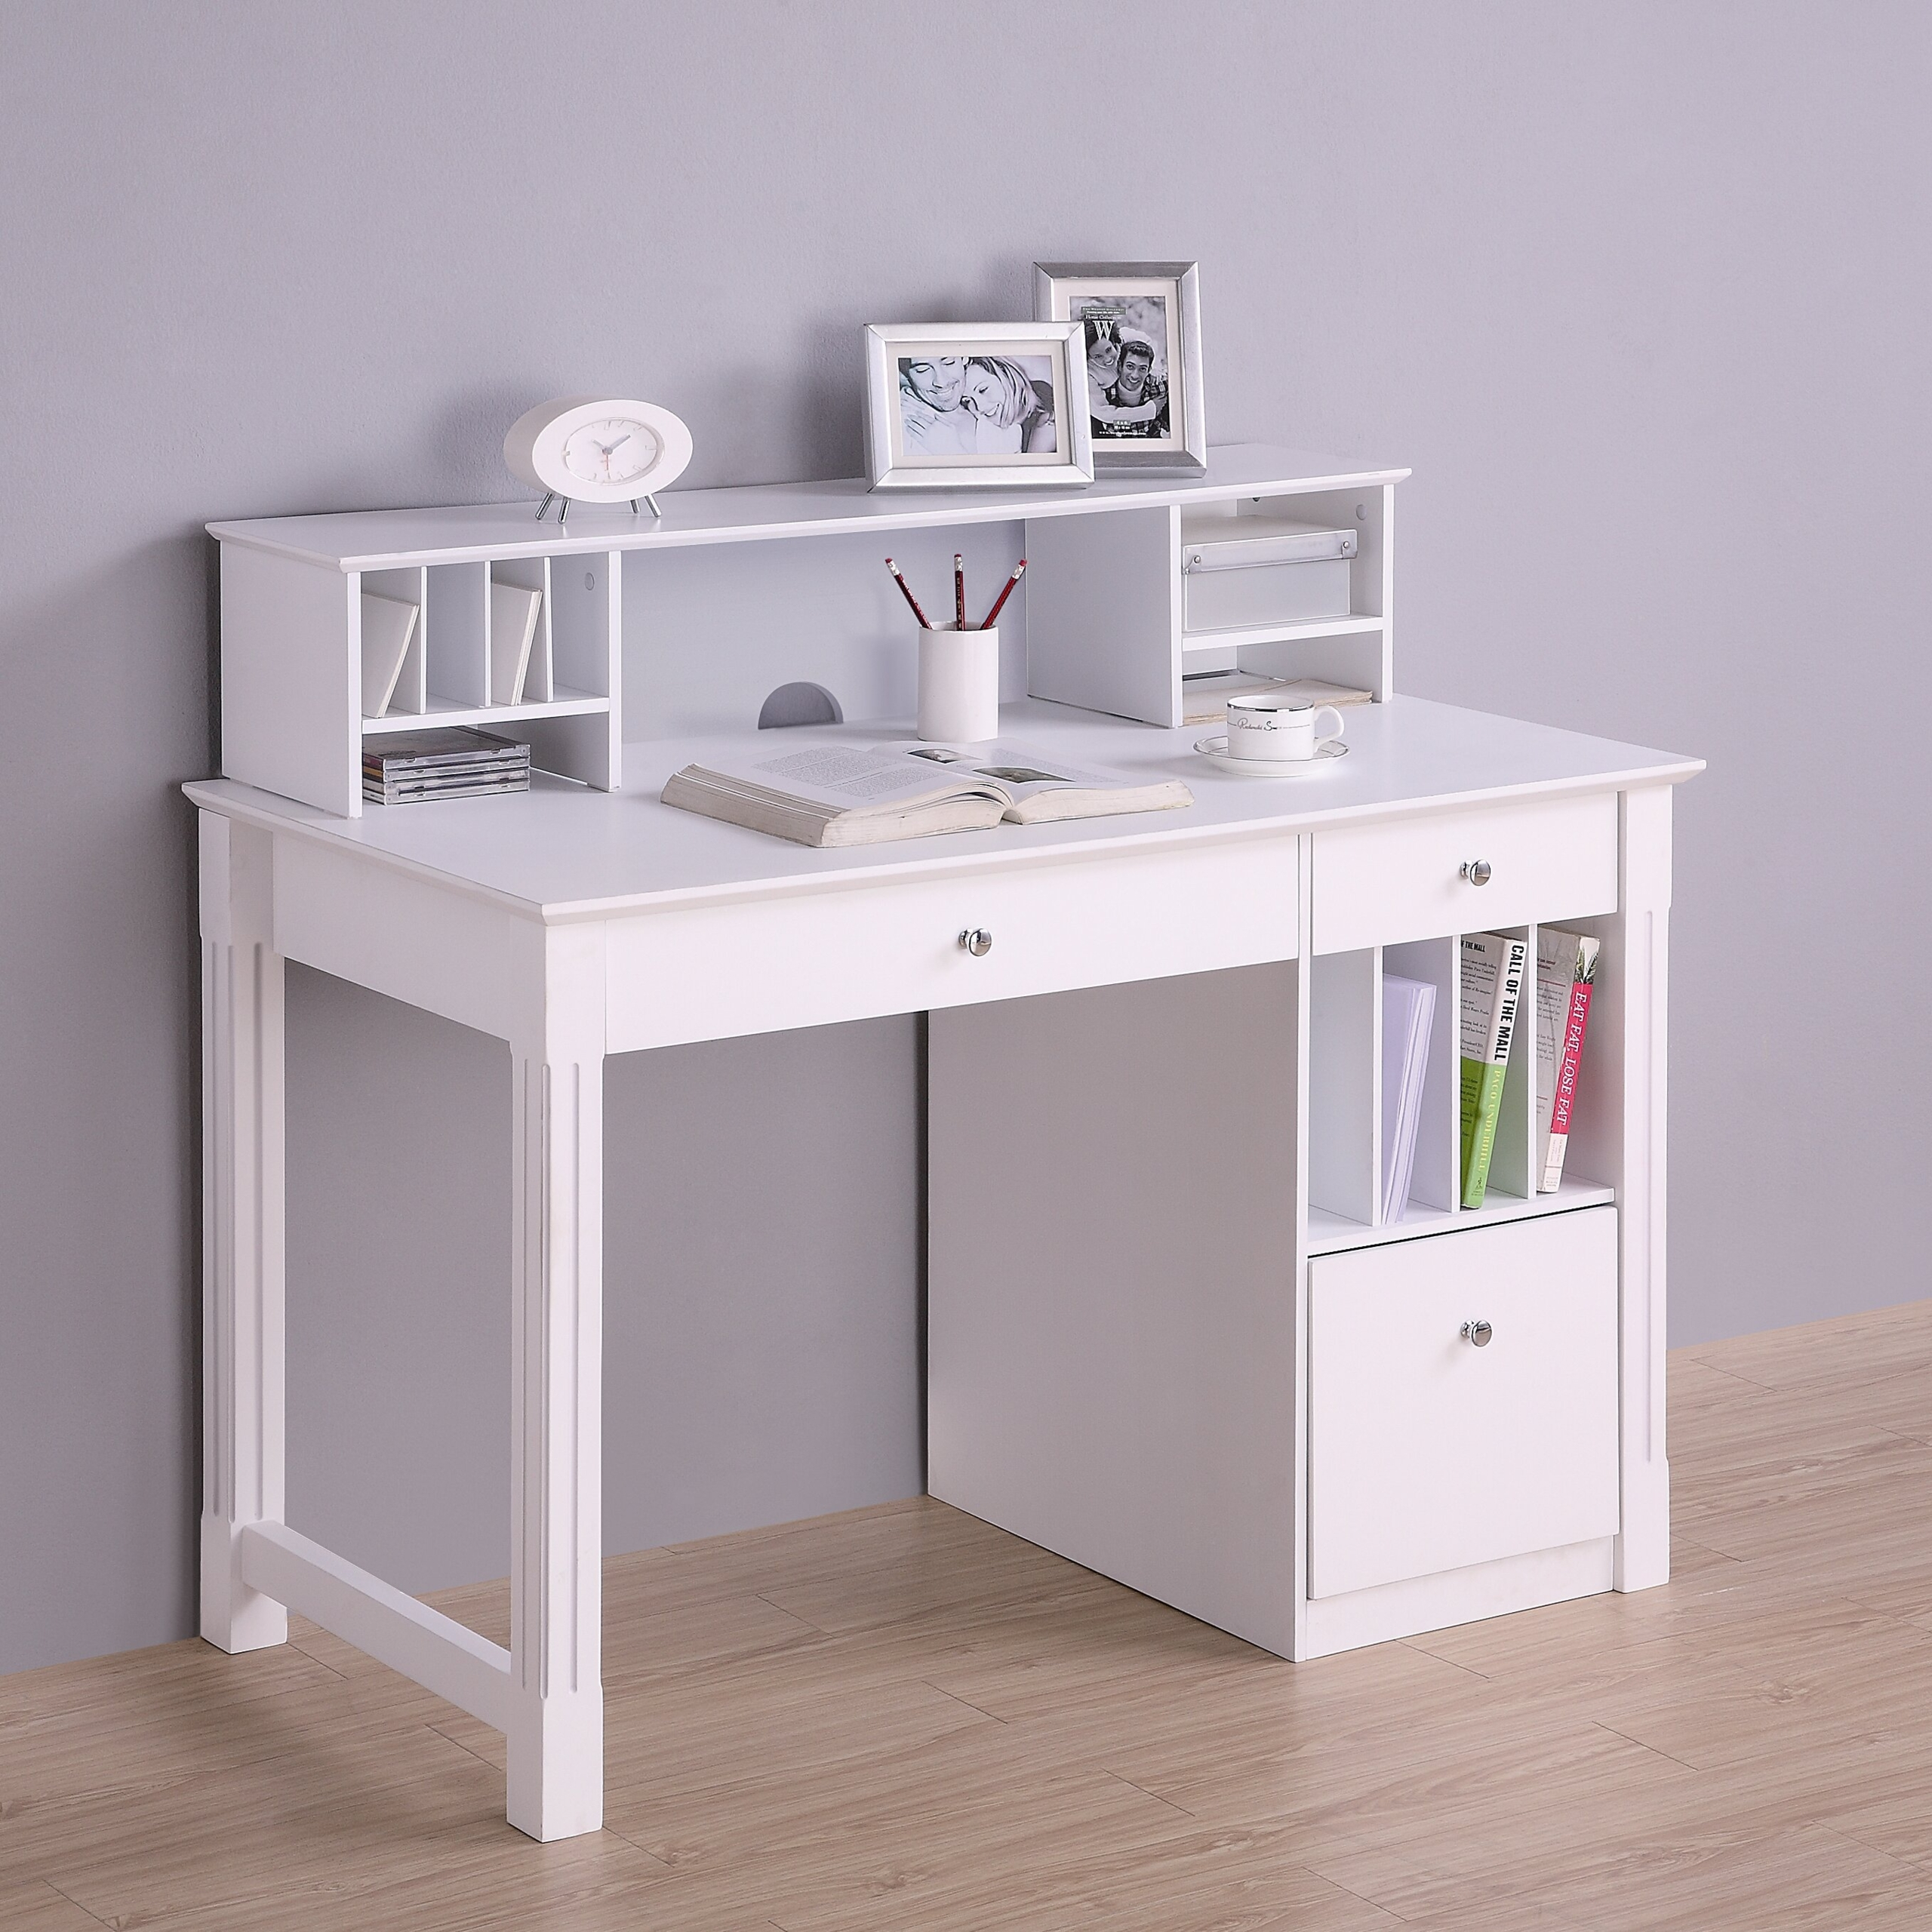 Ikea Officedesk Ideas: Narrow White Desk With Drawers